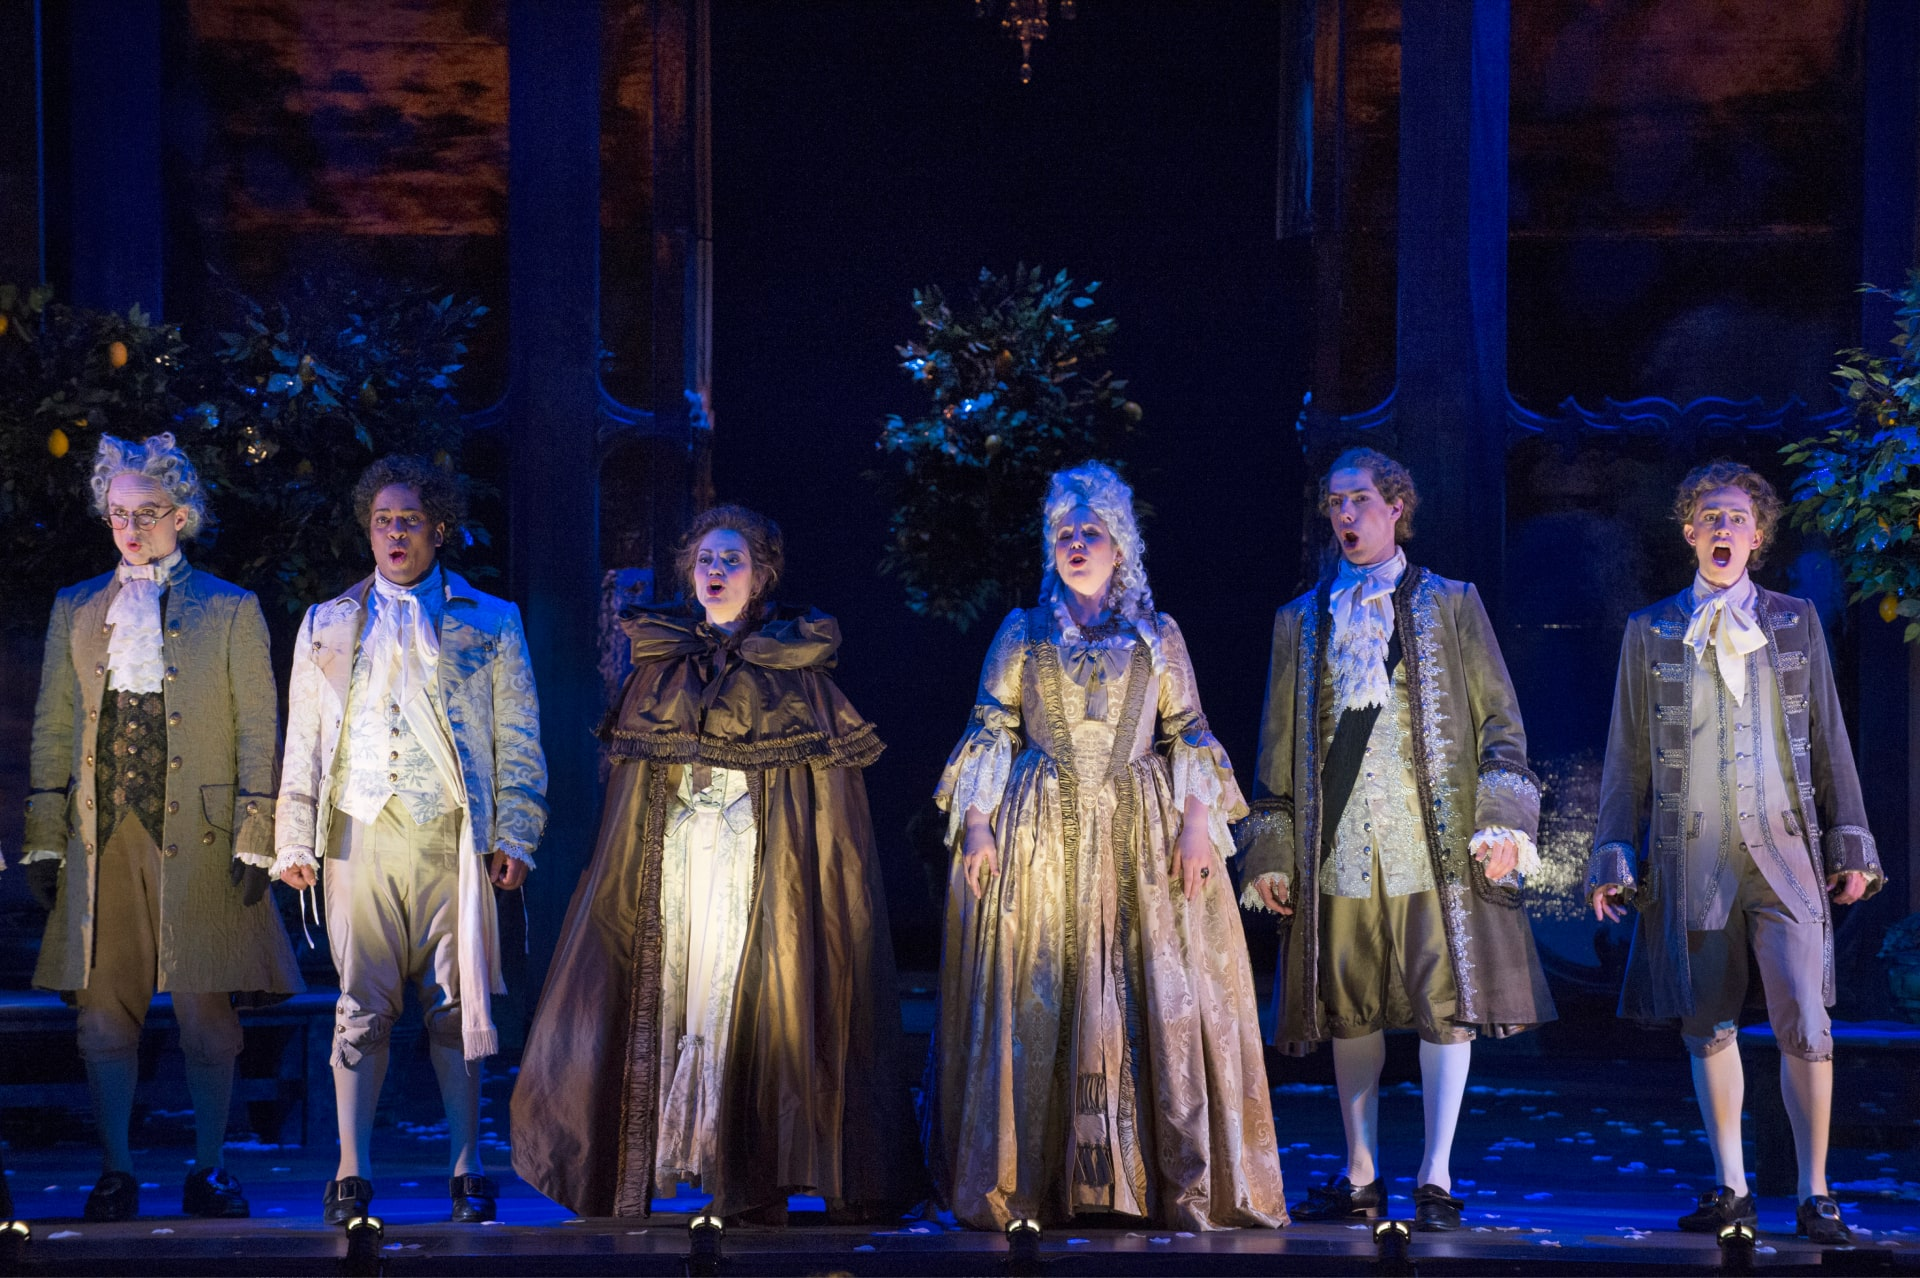 Six opera players in elaborate 18th century attire sing at the forestage lit by footlights.